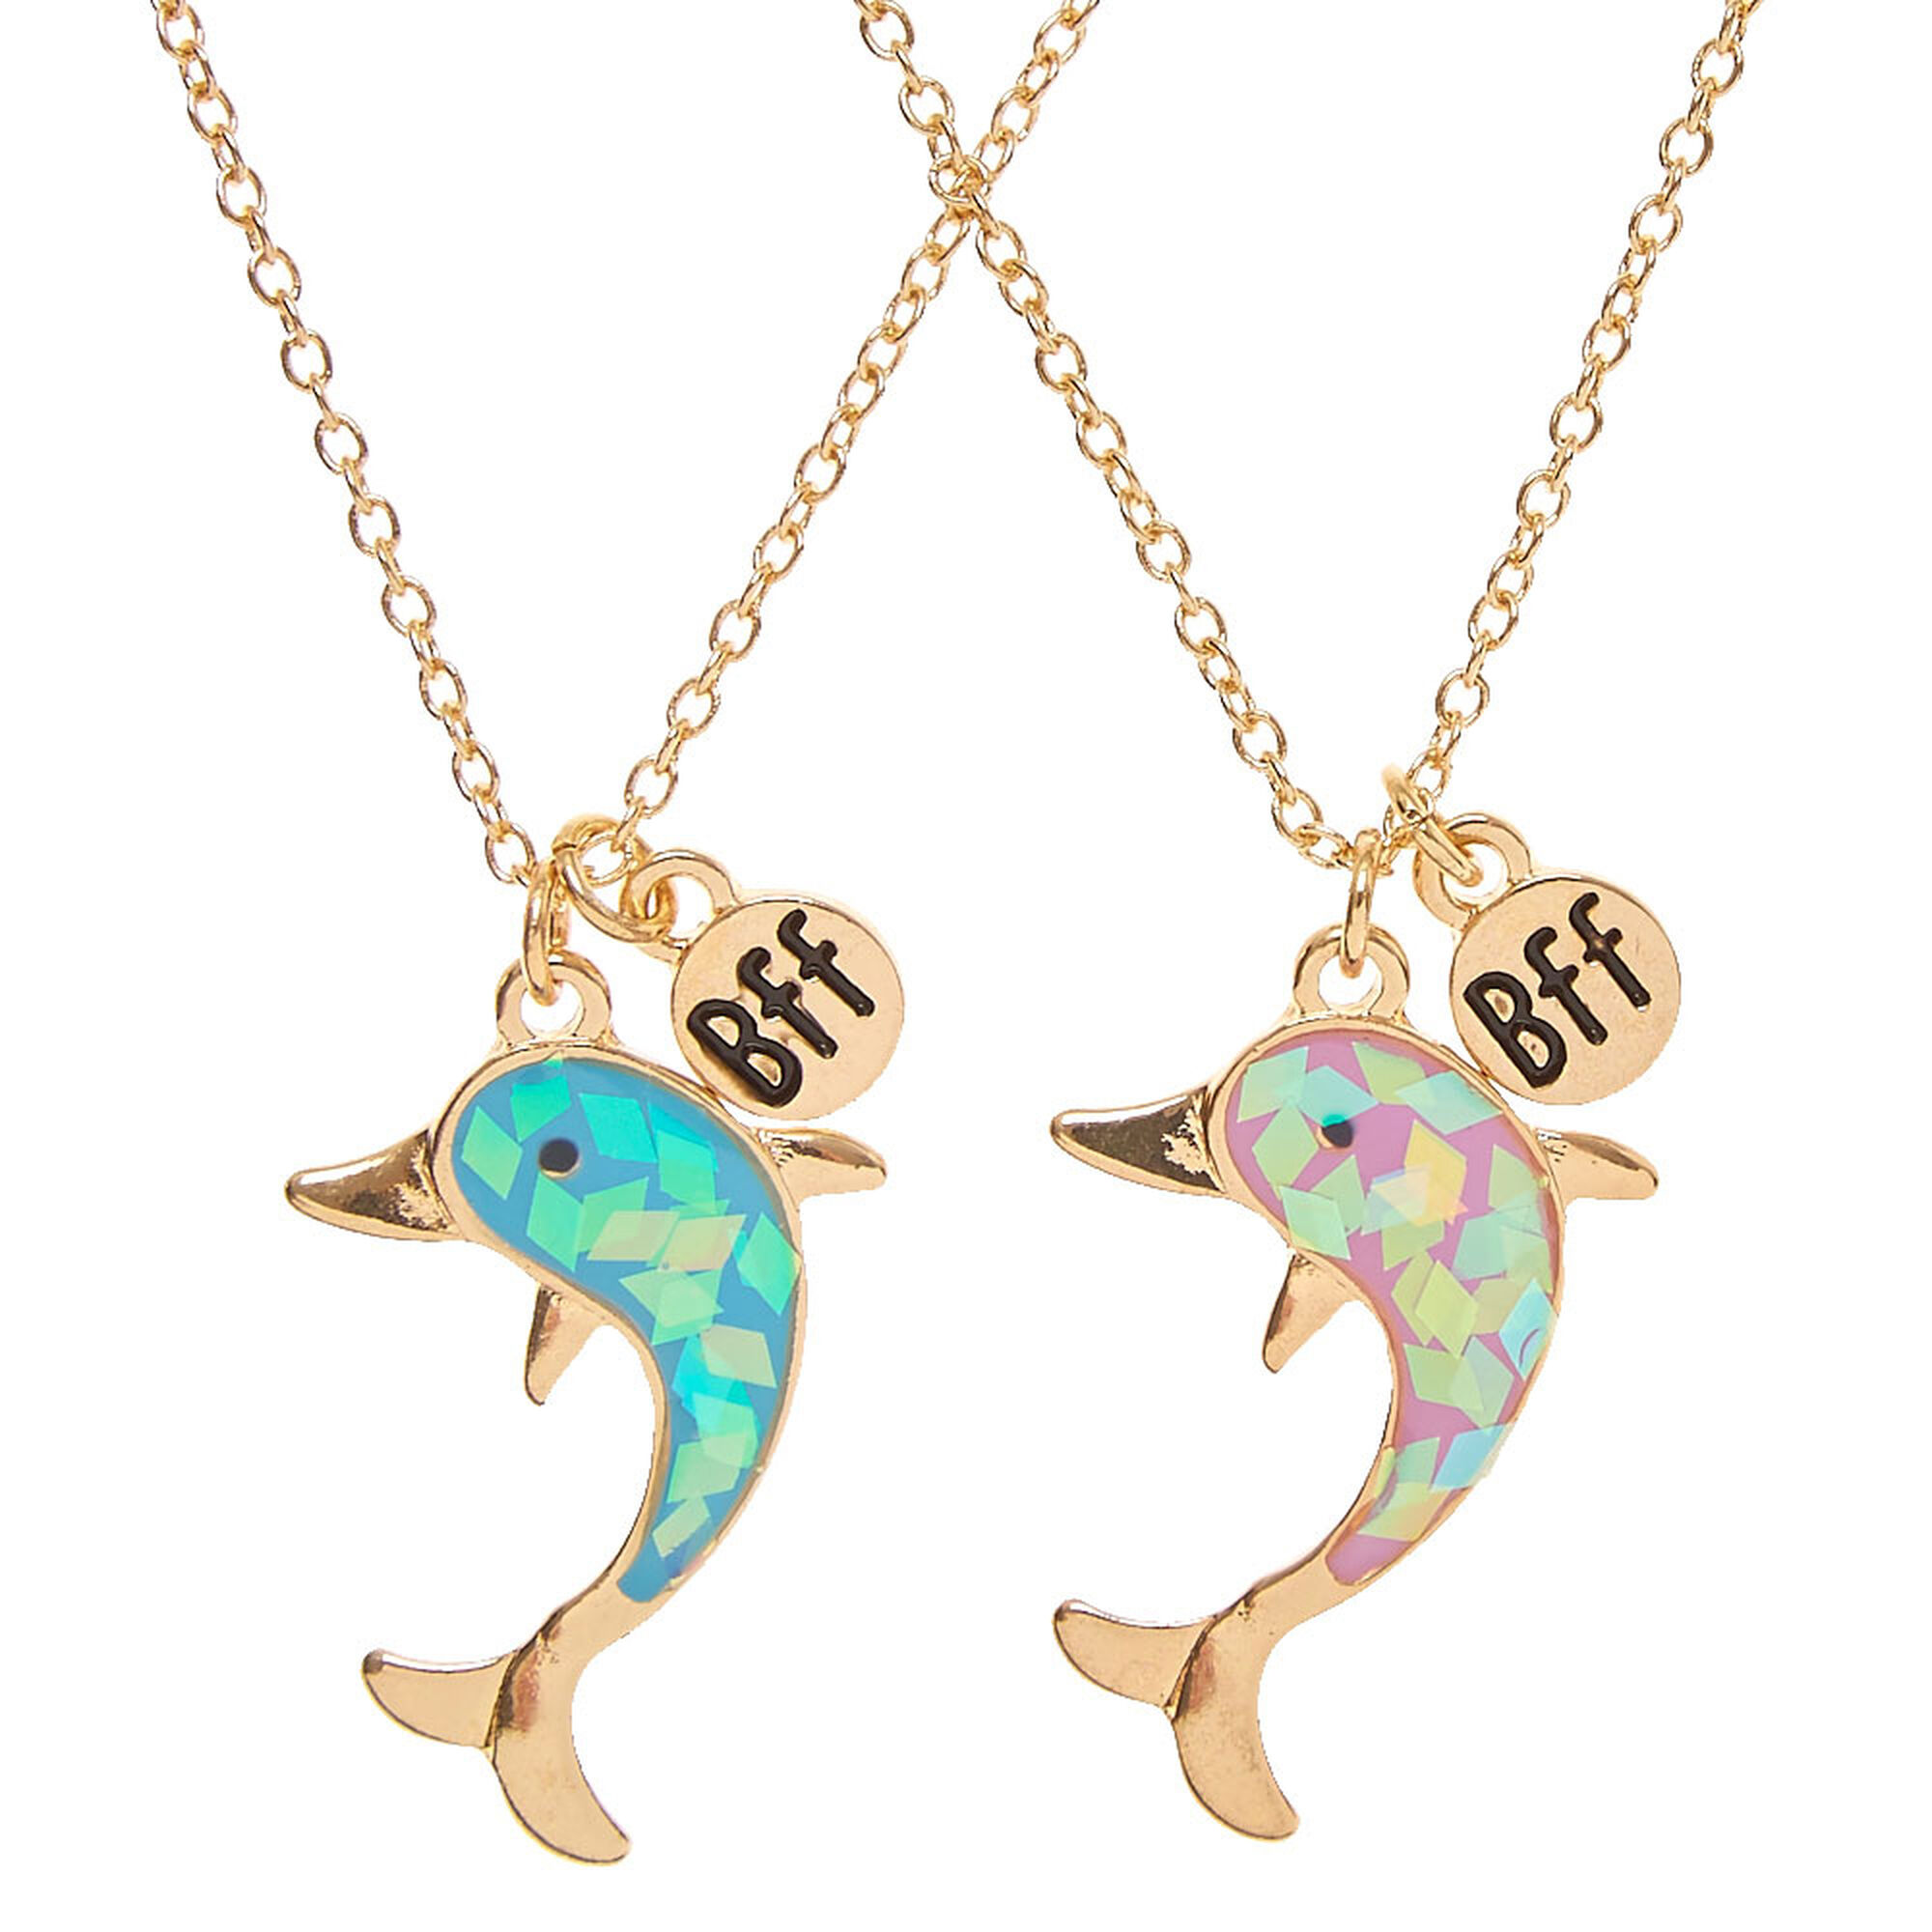 necklace gift products color wholesale gold backwoods stainless steel women dolphin princess for jewelry pendant men animal black